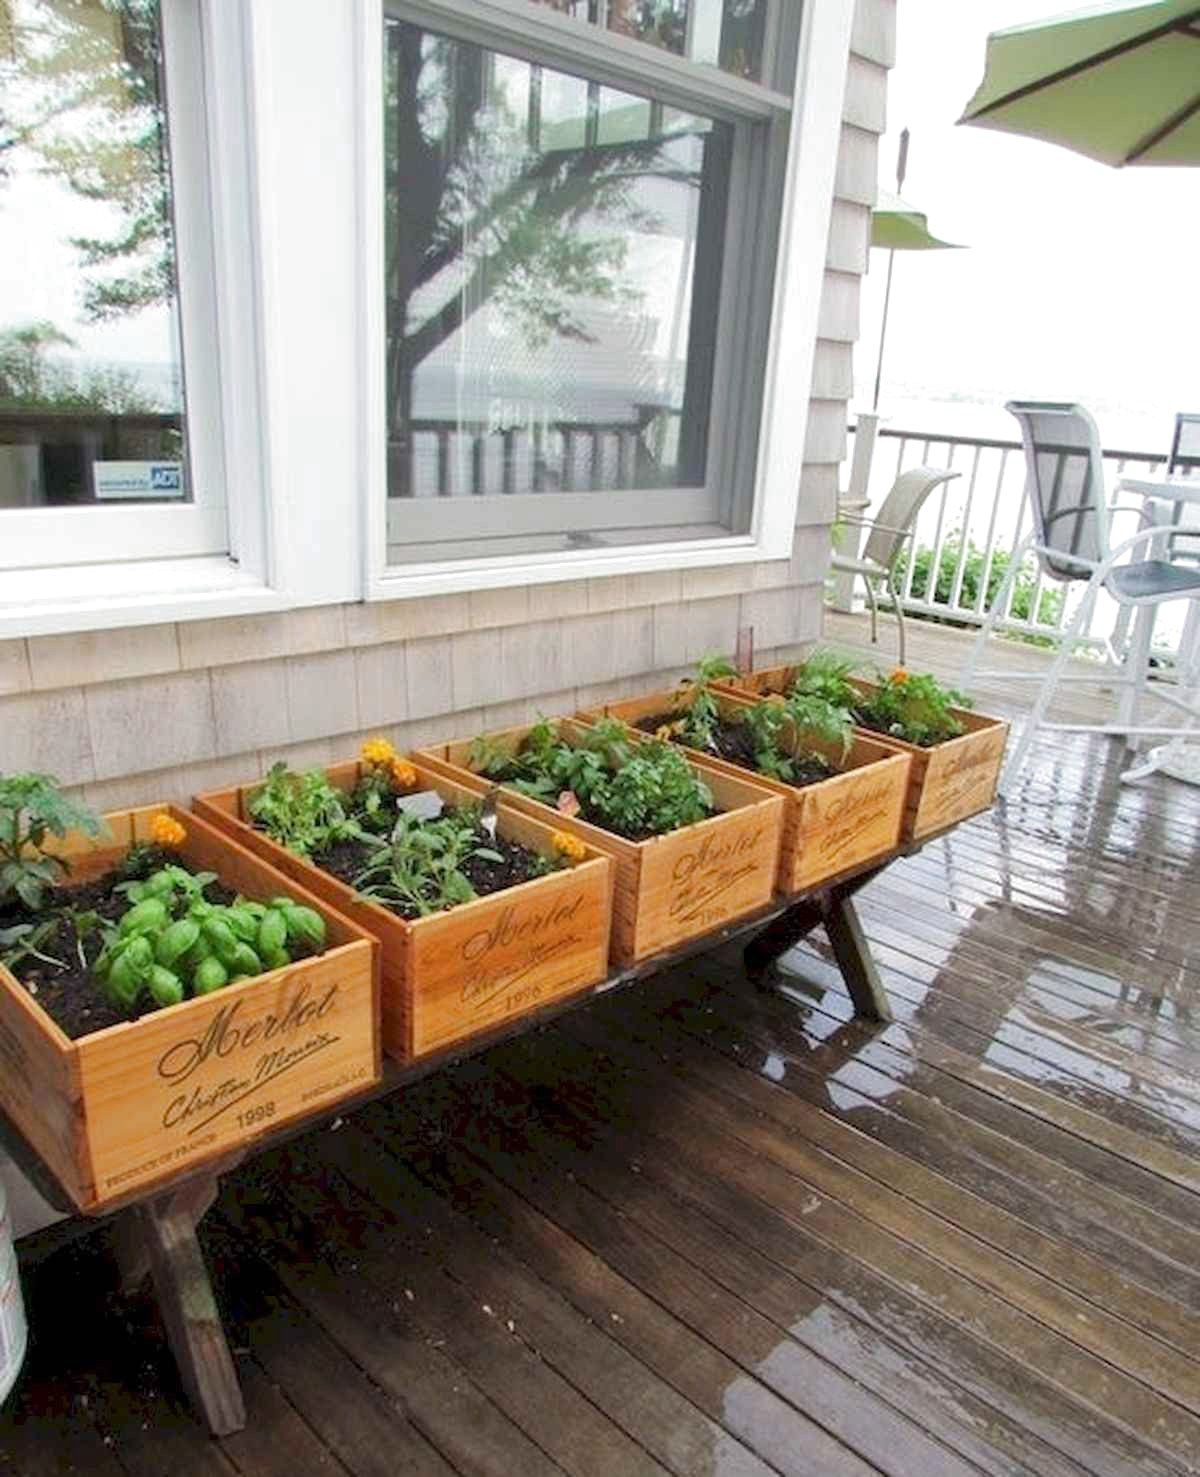 46 Inspiring Herb Garden Design Ideas And Remodel is part of Deck garden, Diy herb garden, Backyard garden, Herbs indoors, Herb garden, Patio garden - For you lovers of greenness, an herbal garden is an interesting concept to make on your own home page  You can choose what plants you will plant for Herb Garden [ … ]